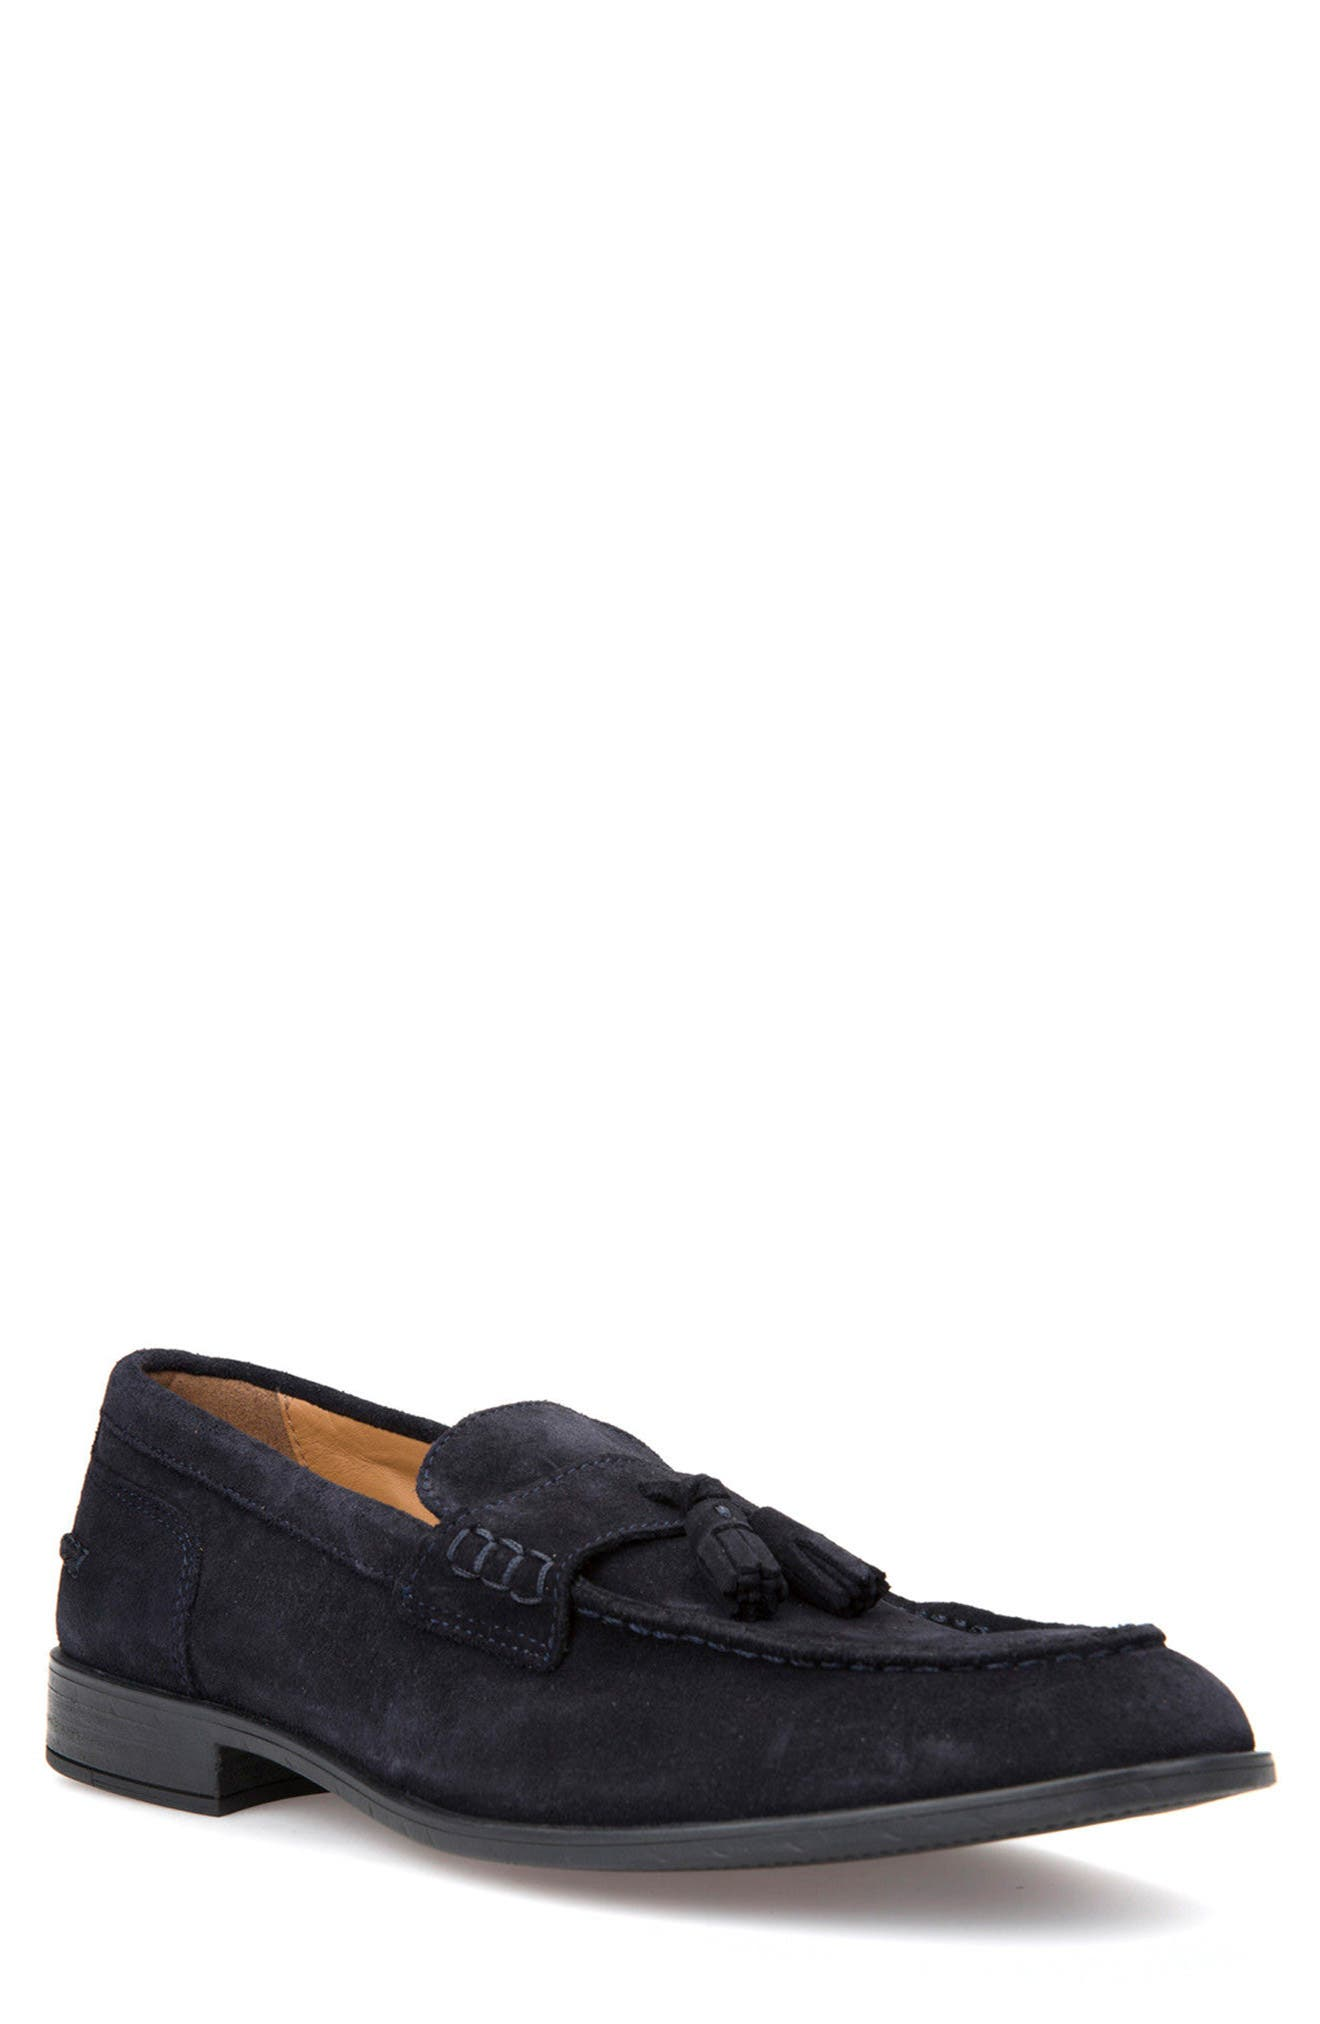 Bryceton 1 Tassel Loafer,                             Main thumbnail 1, color,                             Navy Suede